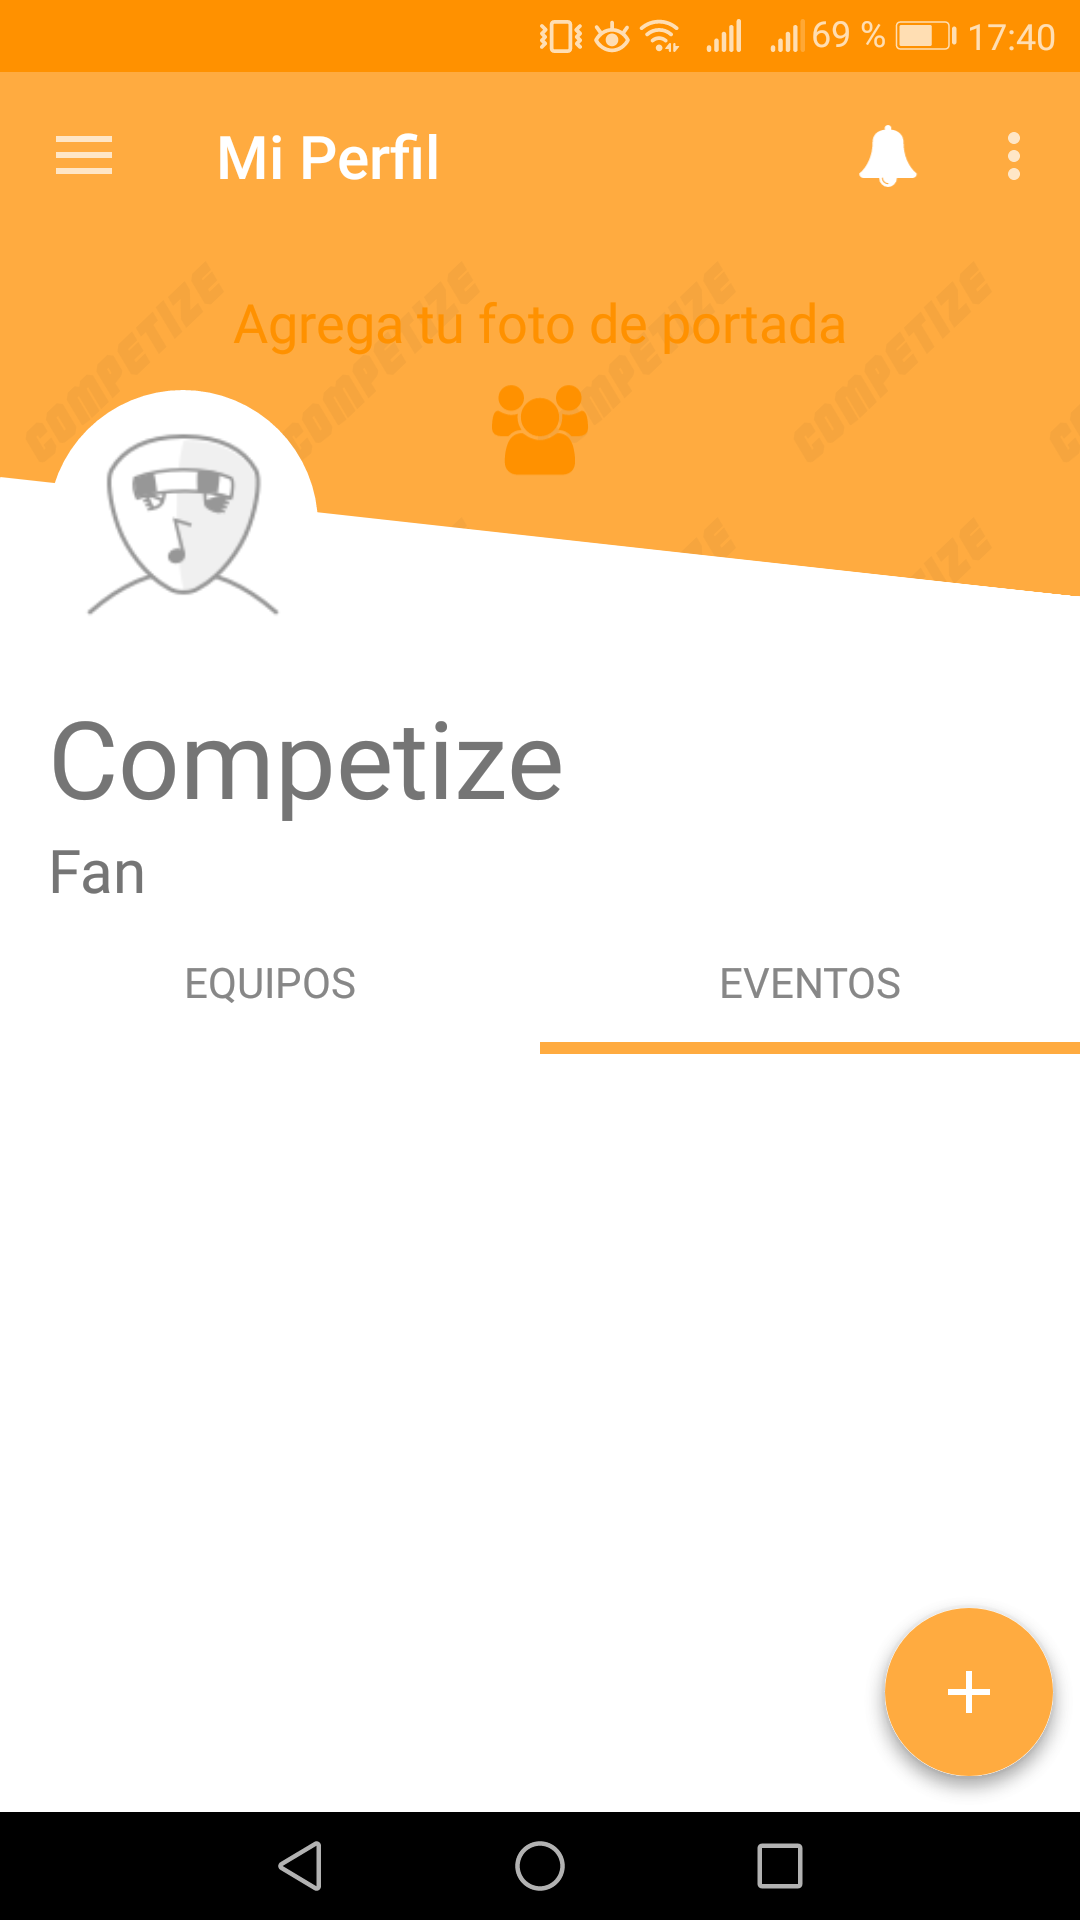 Favorite tournaments in Competize mobile app